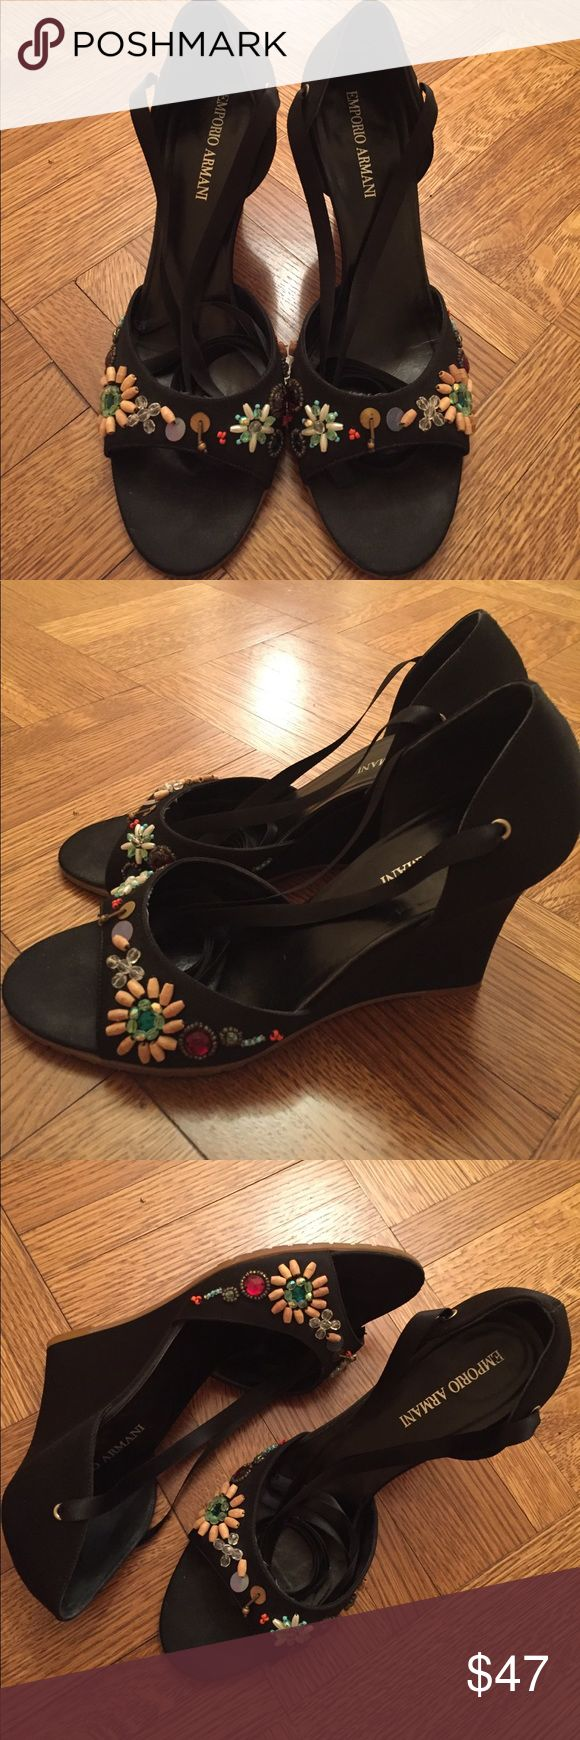 """Vintage Emporio Armani Black Wedge Sandals Vintage Emporio Armani black wedge sandals. Black satin, colorful beading. 3.5"""" wedge heels. Black ribbon ankle ties. In excellent condition. Size 8.5. Emporio Armani Shoes Wedges"""